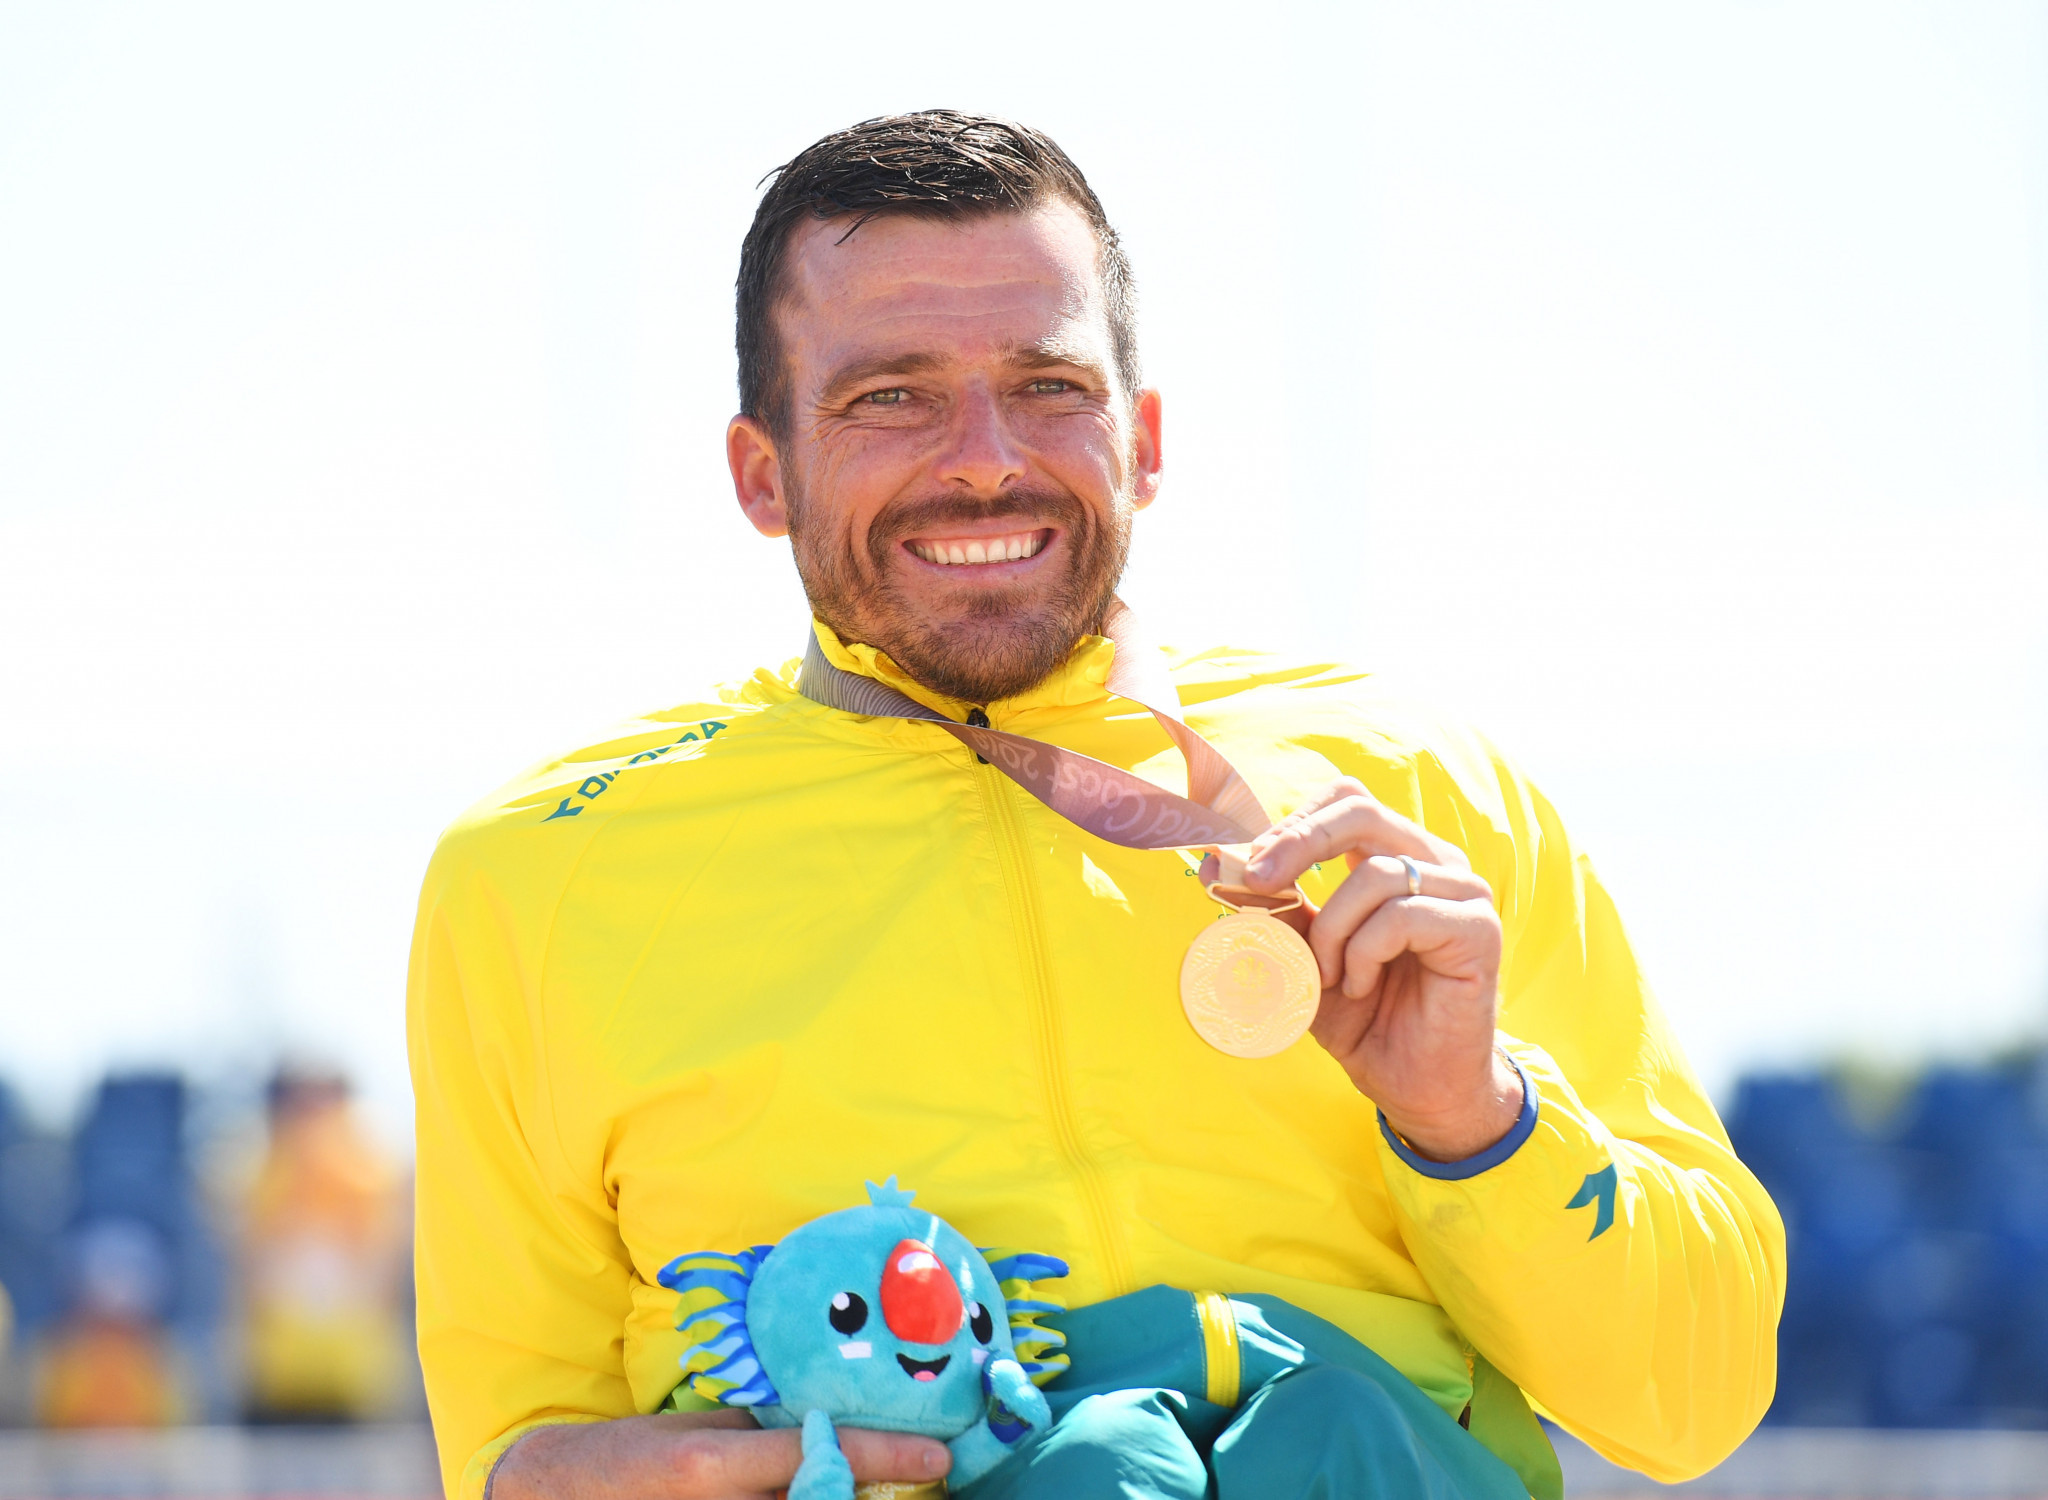 McMahon and Fearnley added to Commonwealth Games Australia team leadership for Birmingham 2022